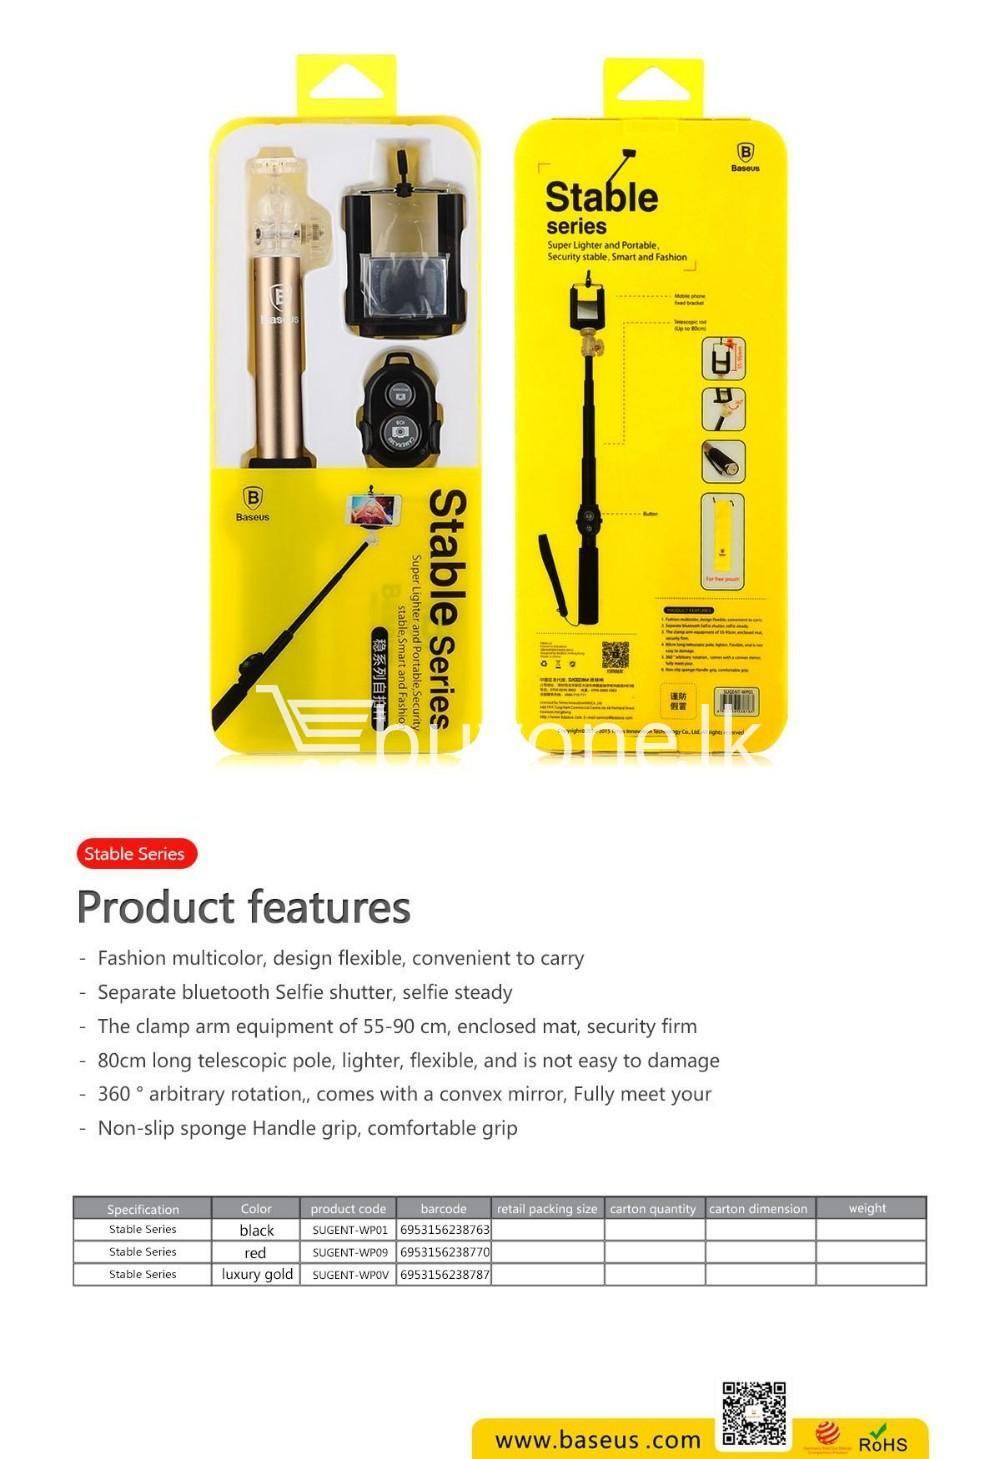 baseus stable series handheld extendable selfie stick with selfie remote mobile store special best offer buy one lk sri lanka 46189 Baseus Stable Series Handheld Extendable Selfie Stick with Selfie Remote